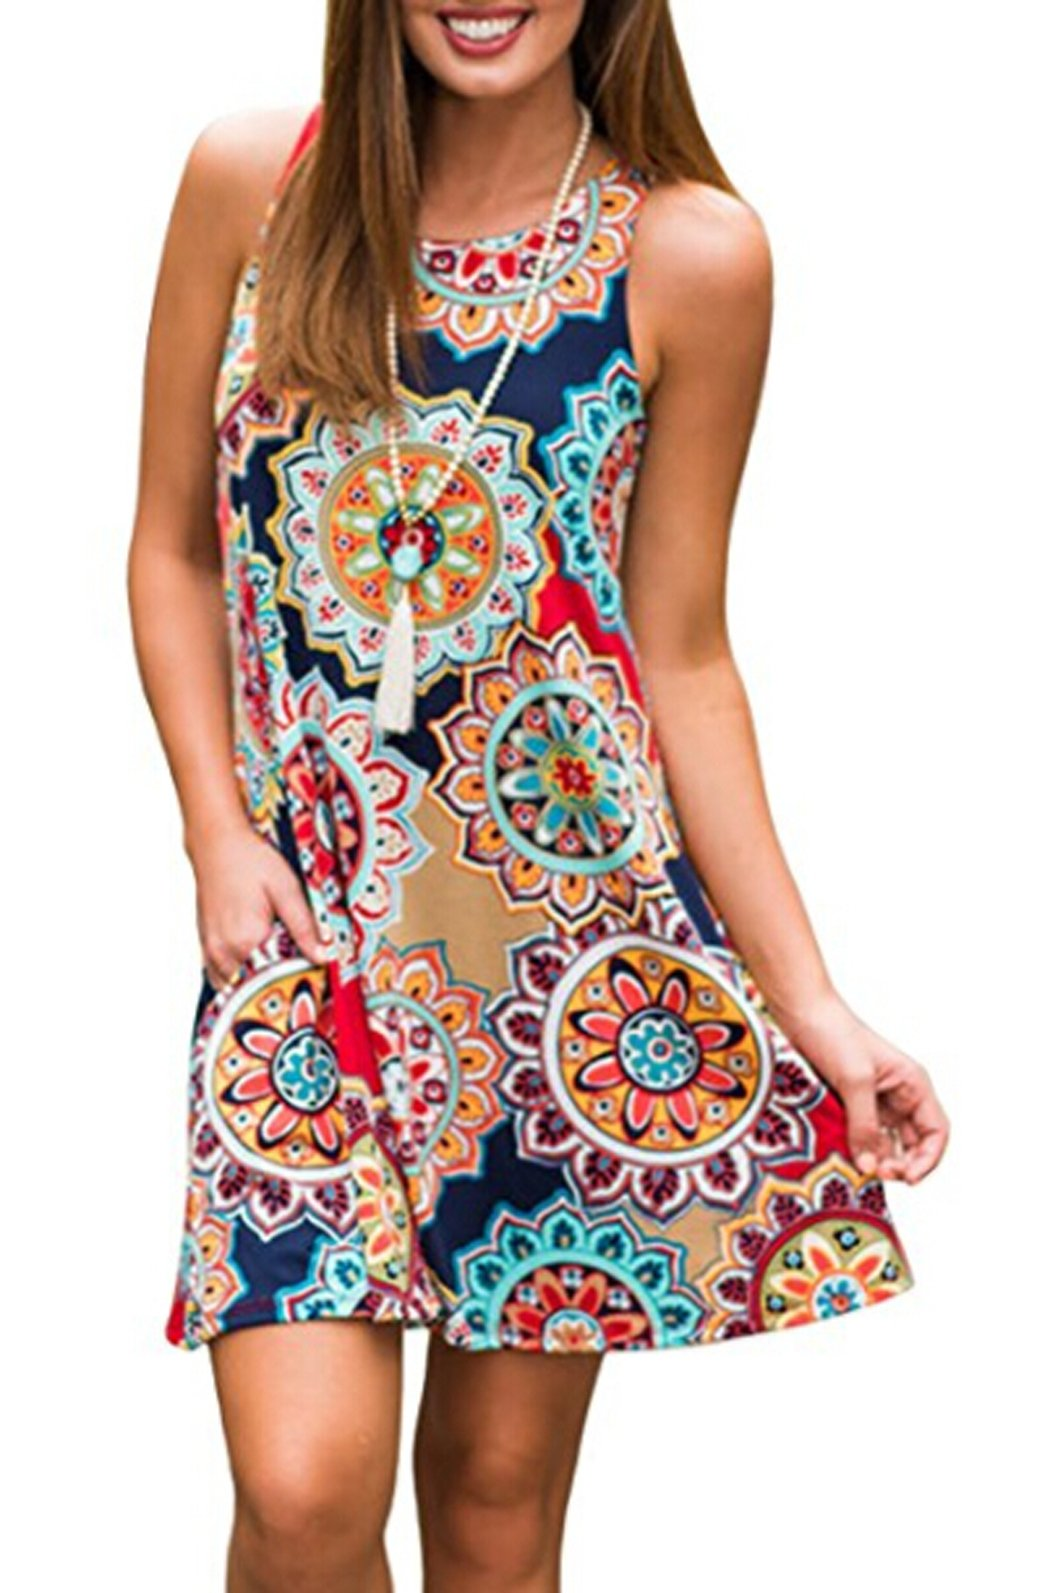 POGTMM Ladies Casual Ethnic Flower Print Beach Loose Tank Plus Size Short Dresses(Navy Blue,XXL) by POGTMM (Image #1)